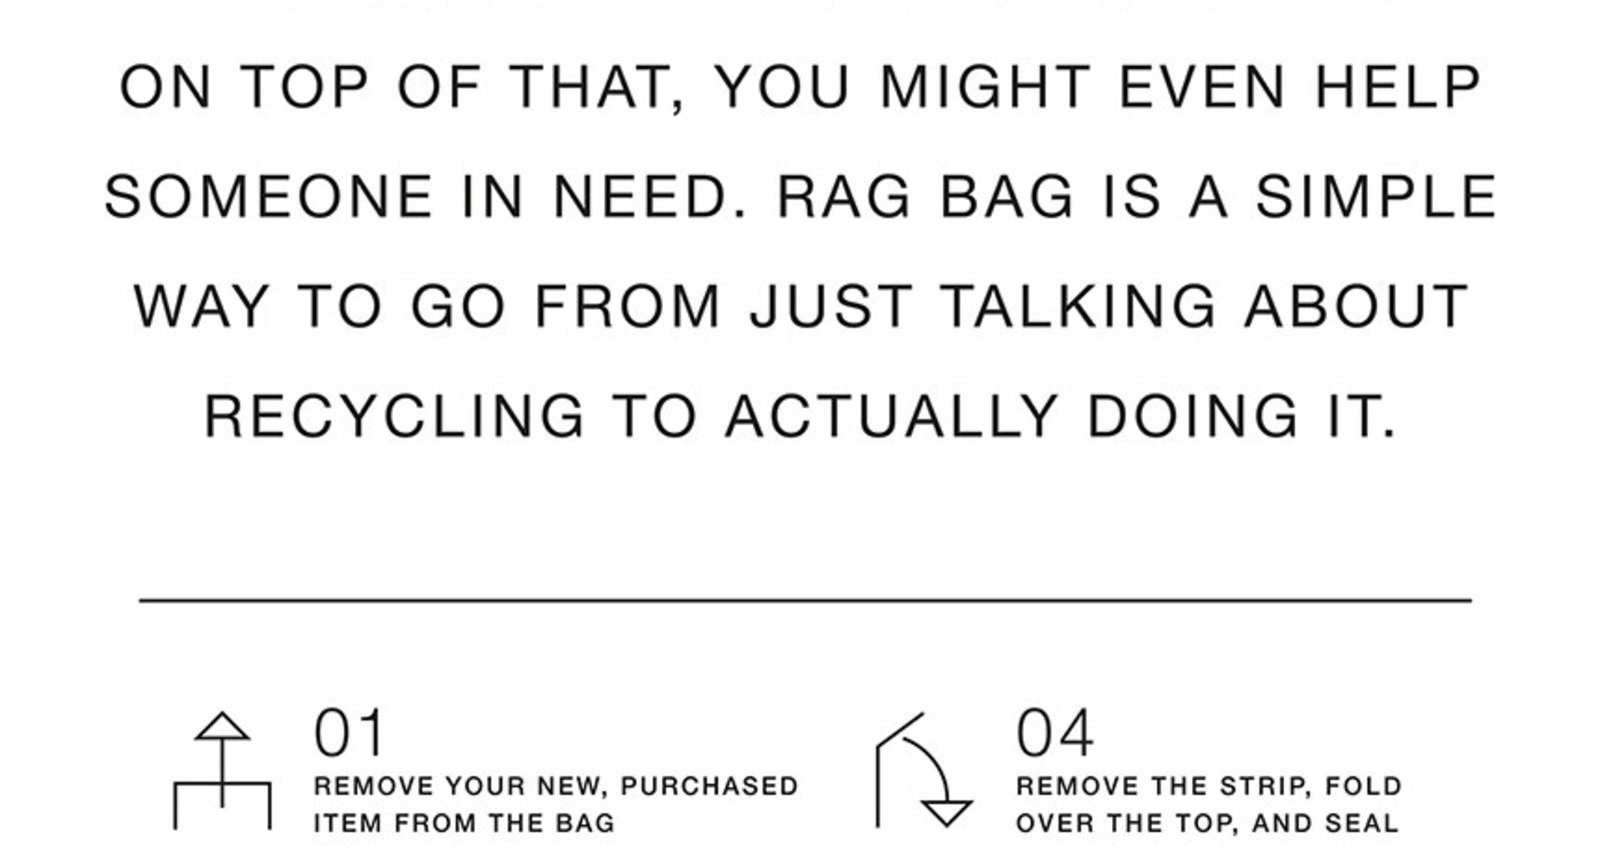 The Rag Bag